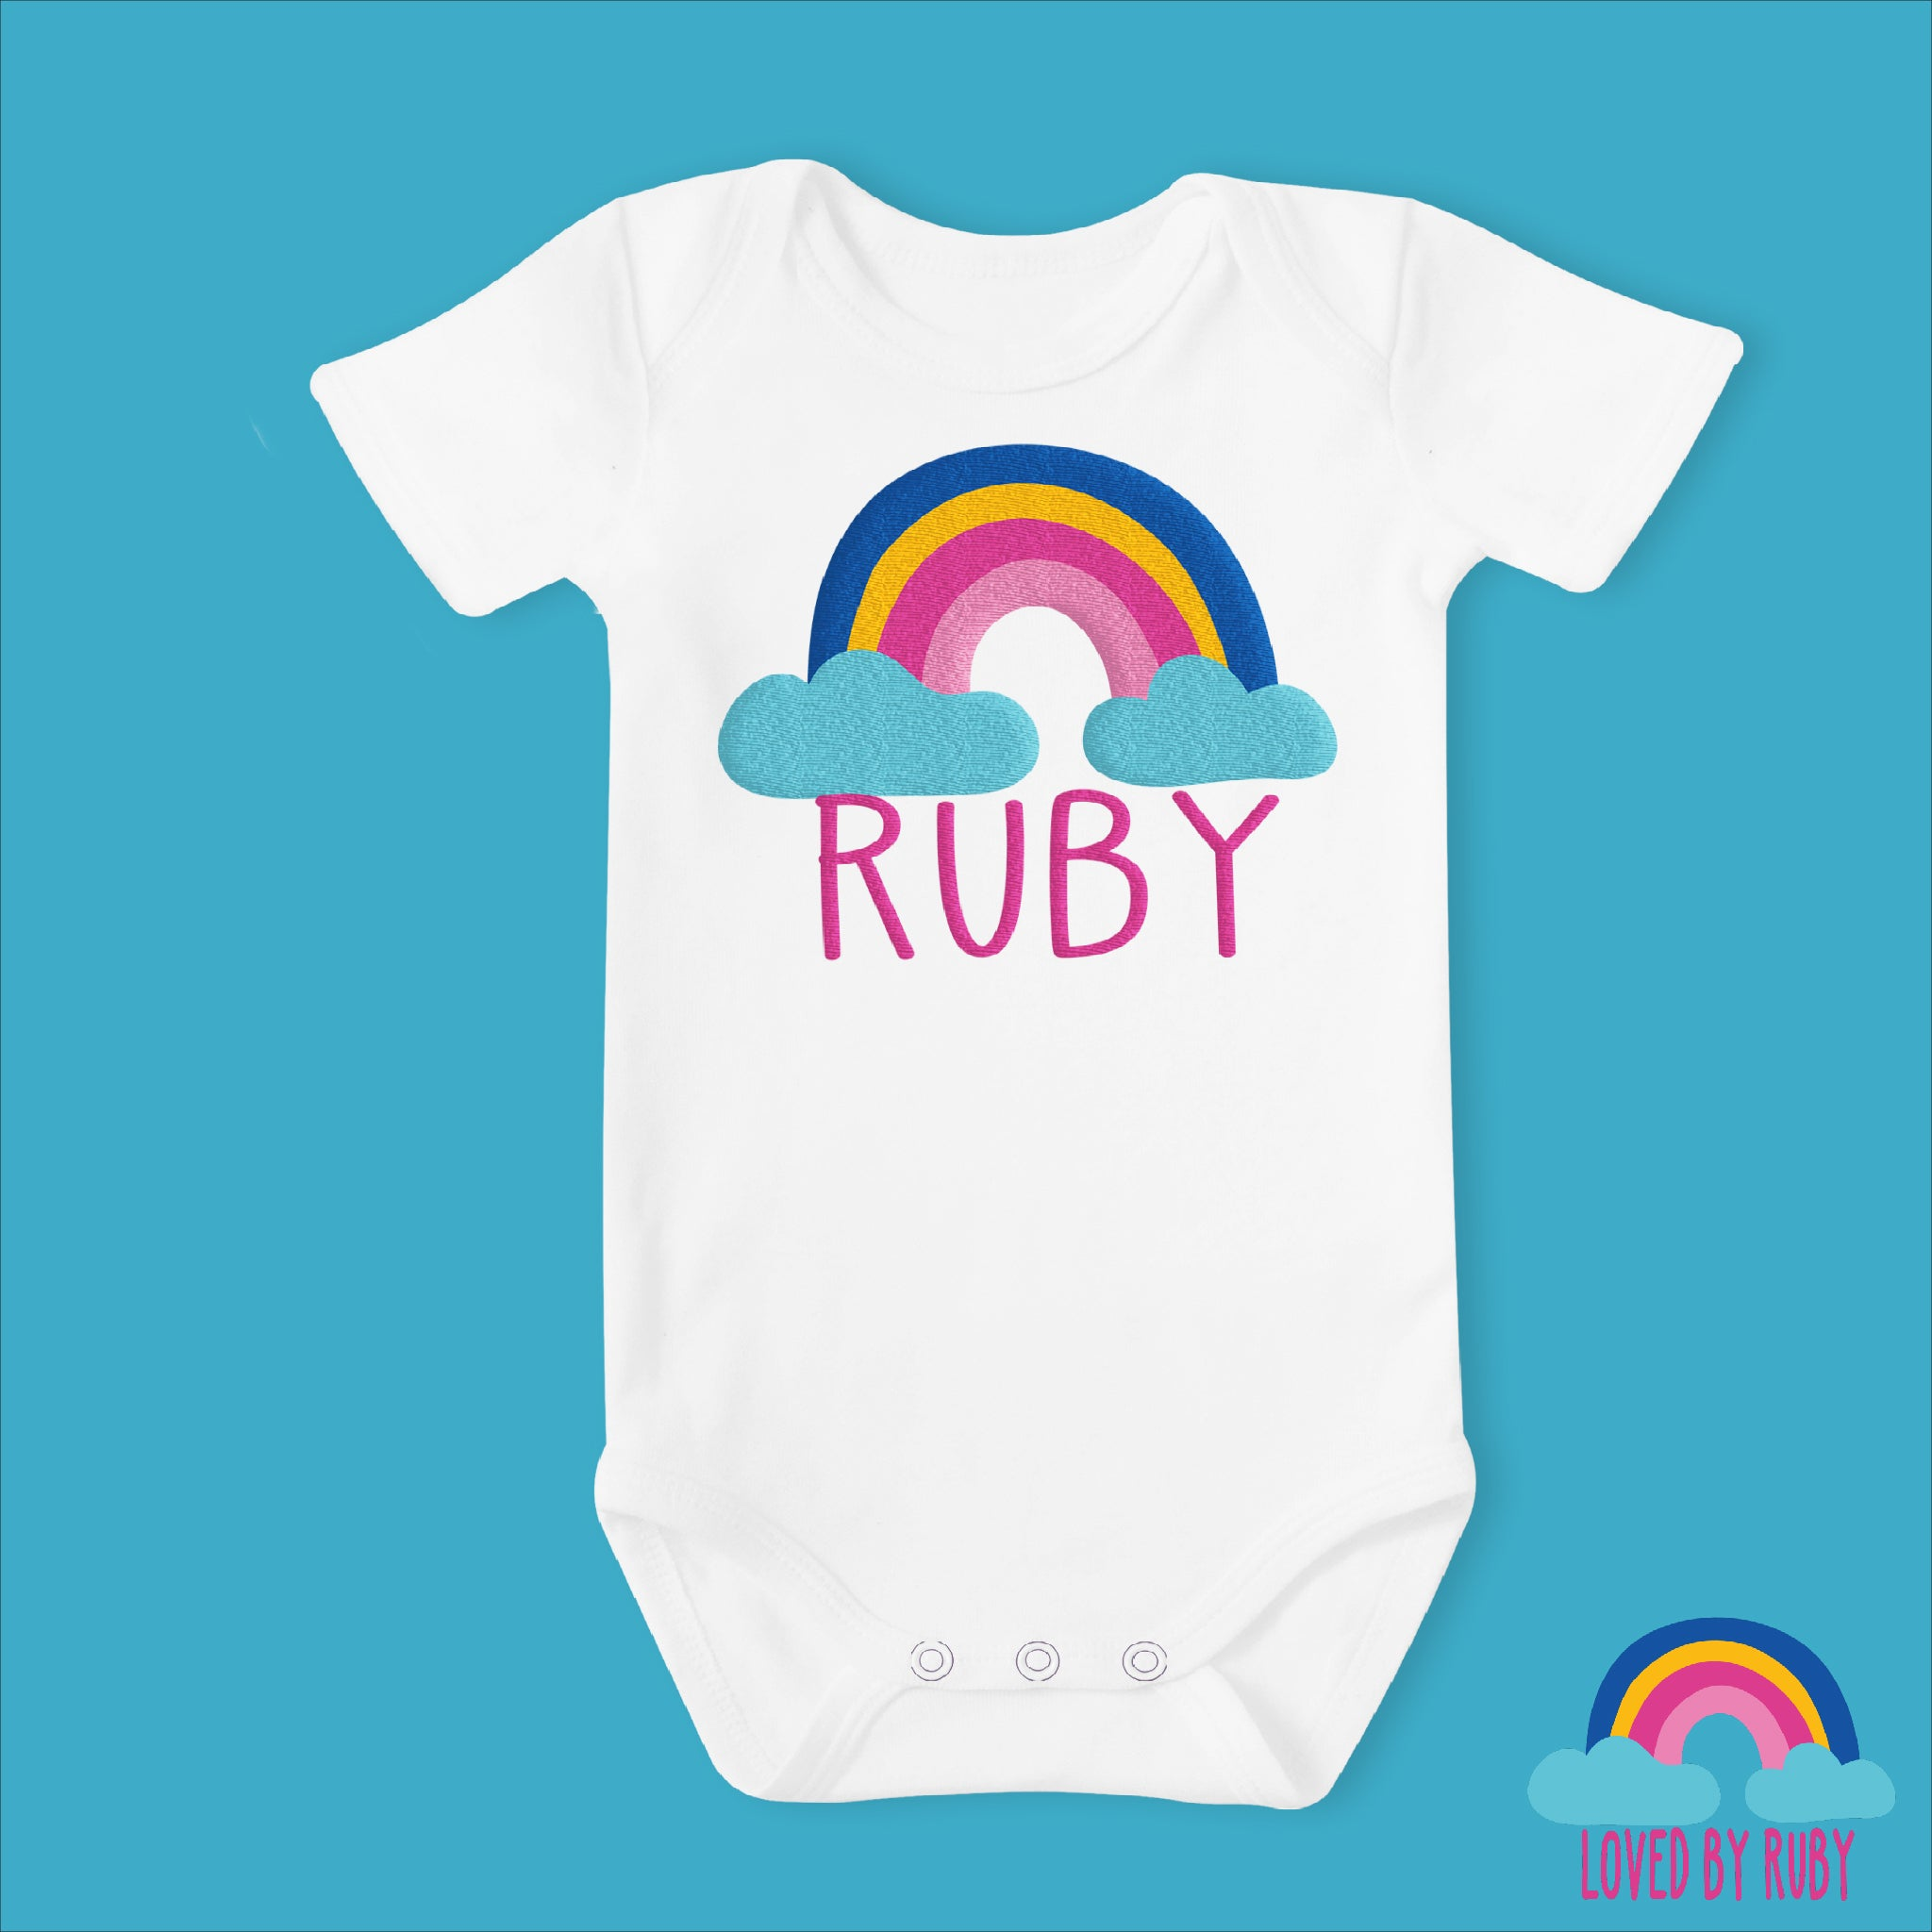 Personalised Rainbow Baby Vest in White - Rainbow Design - Ruby and the Rainbow